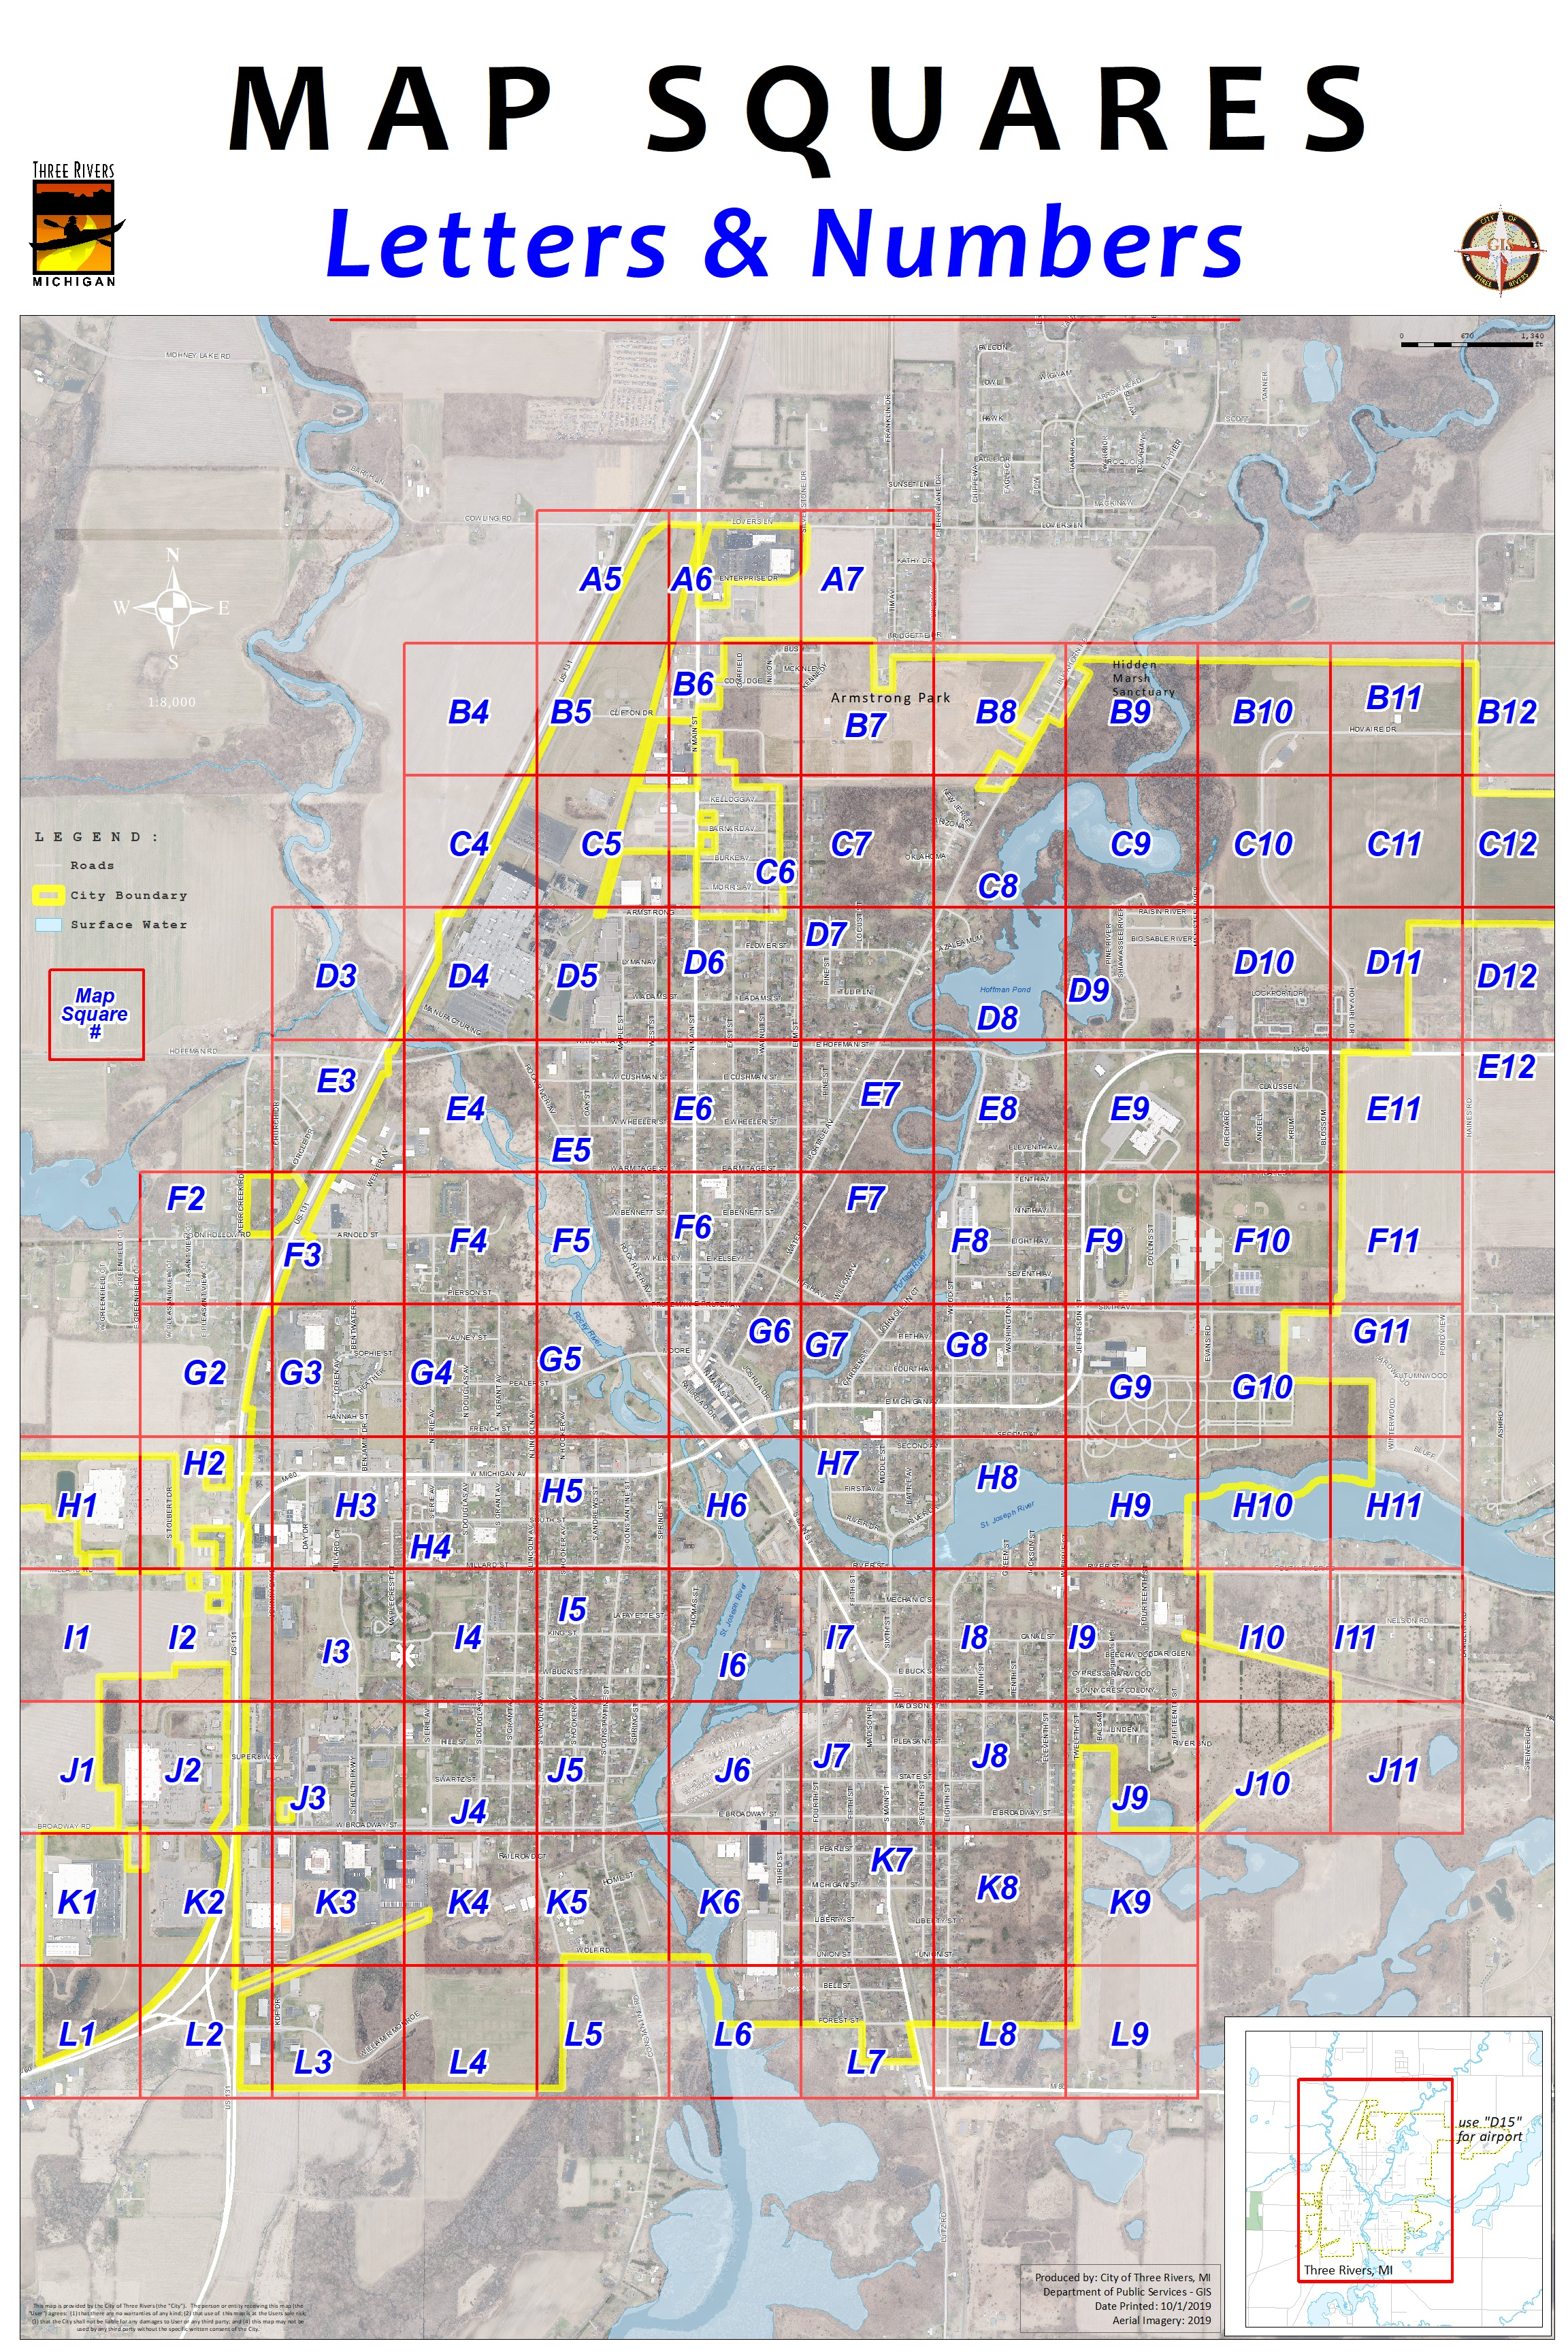 """NOTE:  Downtown is """"G6"""", W.Michigan Ave. is H3 to H5, E.Michigan Ave. is G7 & G8, Armstrong Park is B7 & B8, High school is F9, Middle school is E9, Hoffman Pond is D8, Memory Isle Park is mostly G5, Scidmore Pk. is H6, etc,..."""